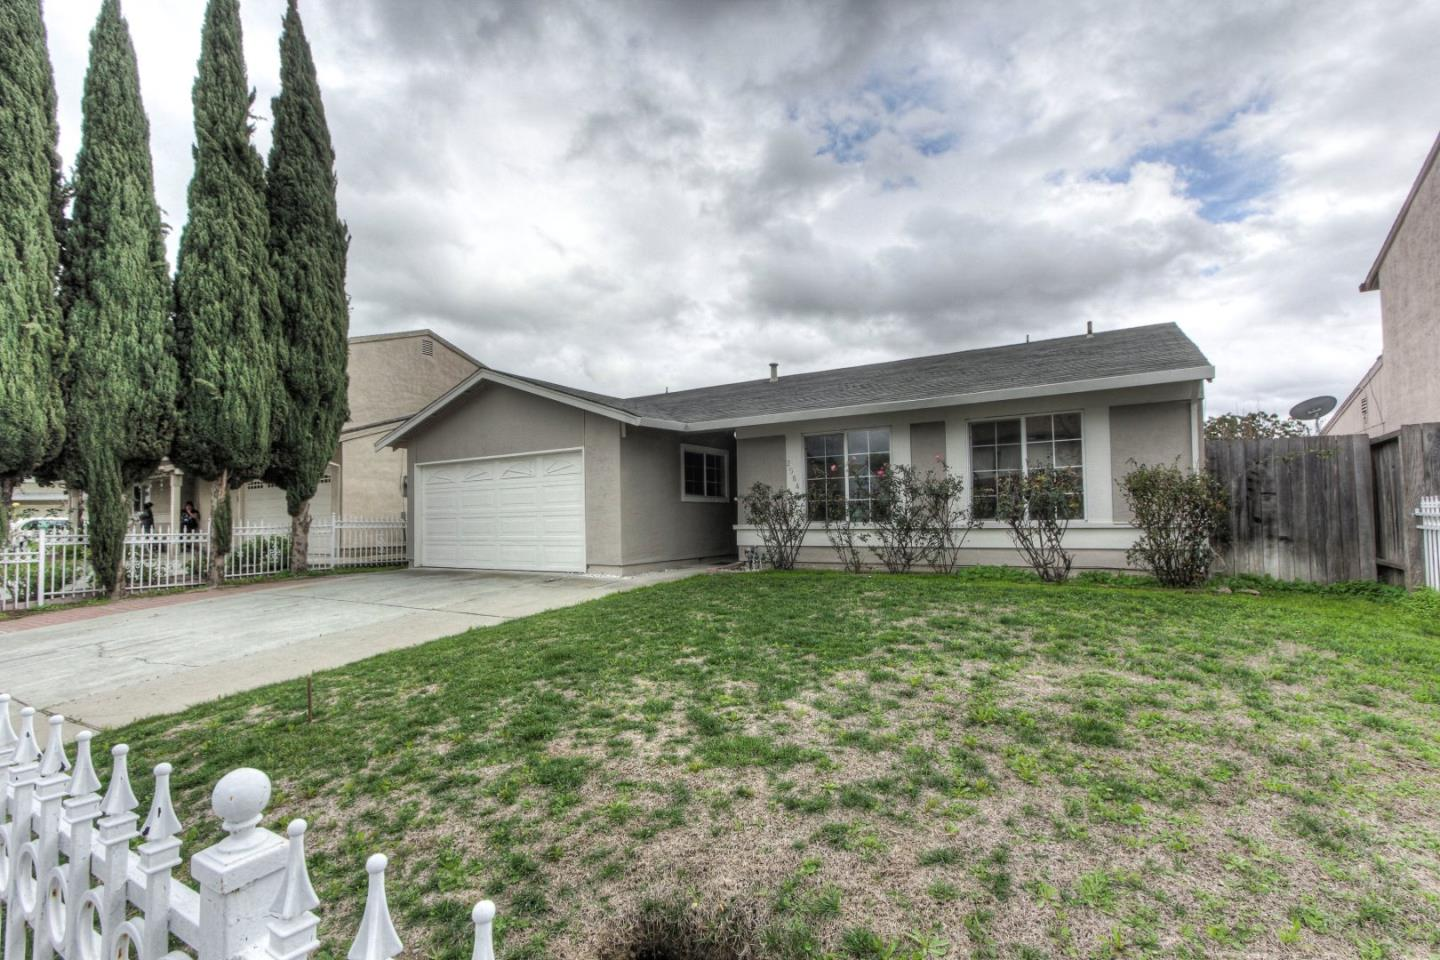 2584 Sierra Vista Ct, San Jose, CA